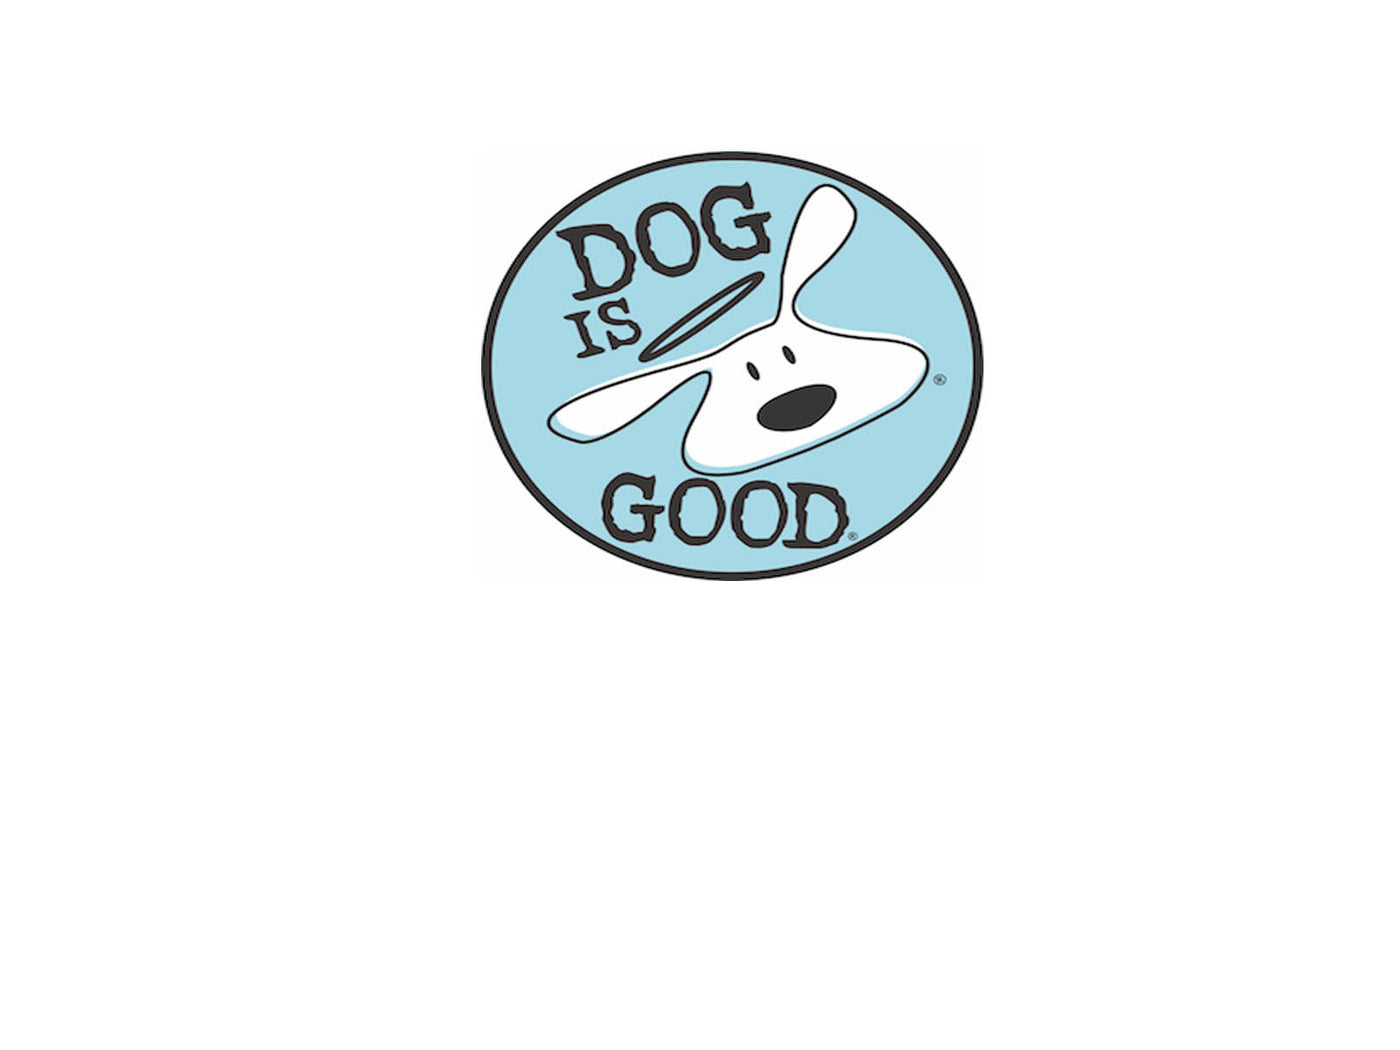 Red Dog Decor is excited to be an authorized retailer for Dog Is good